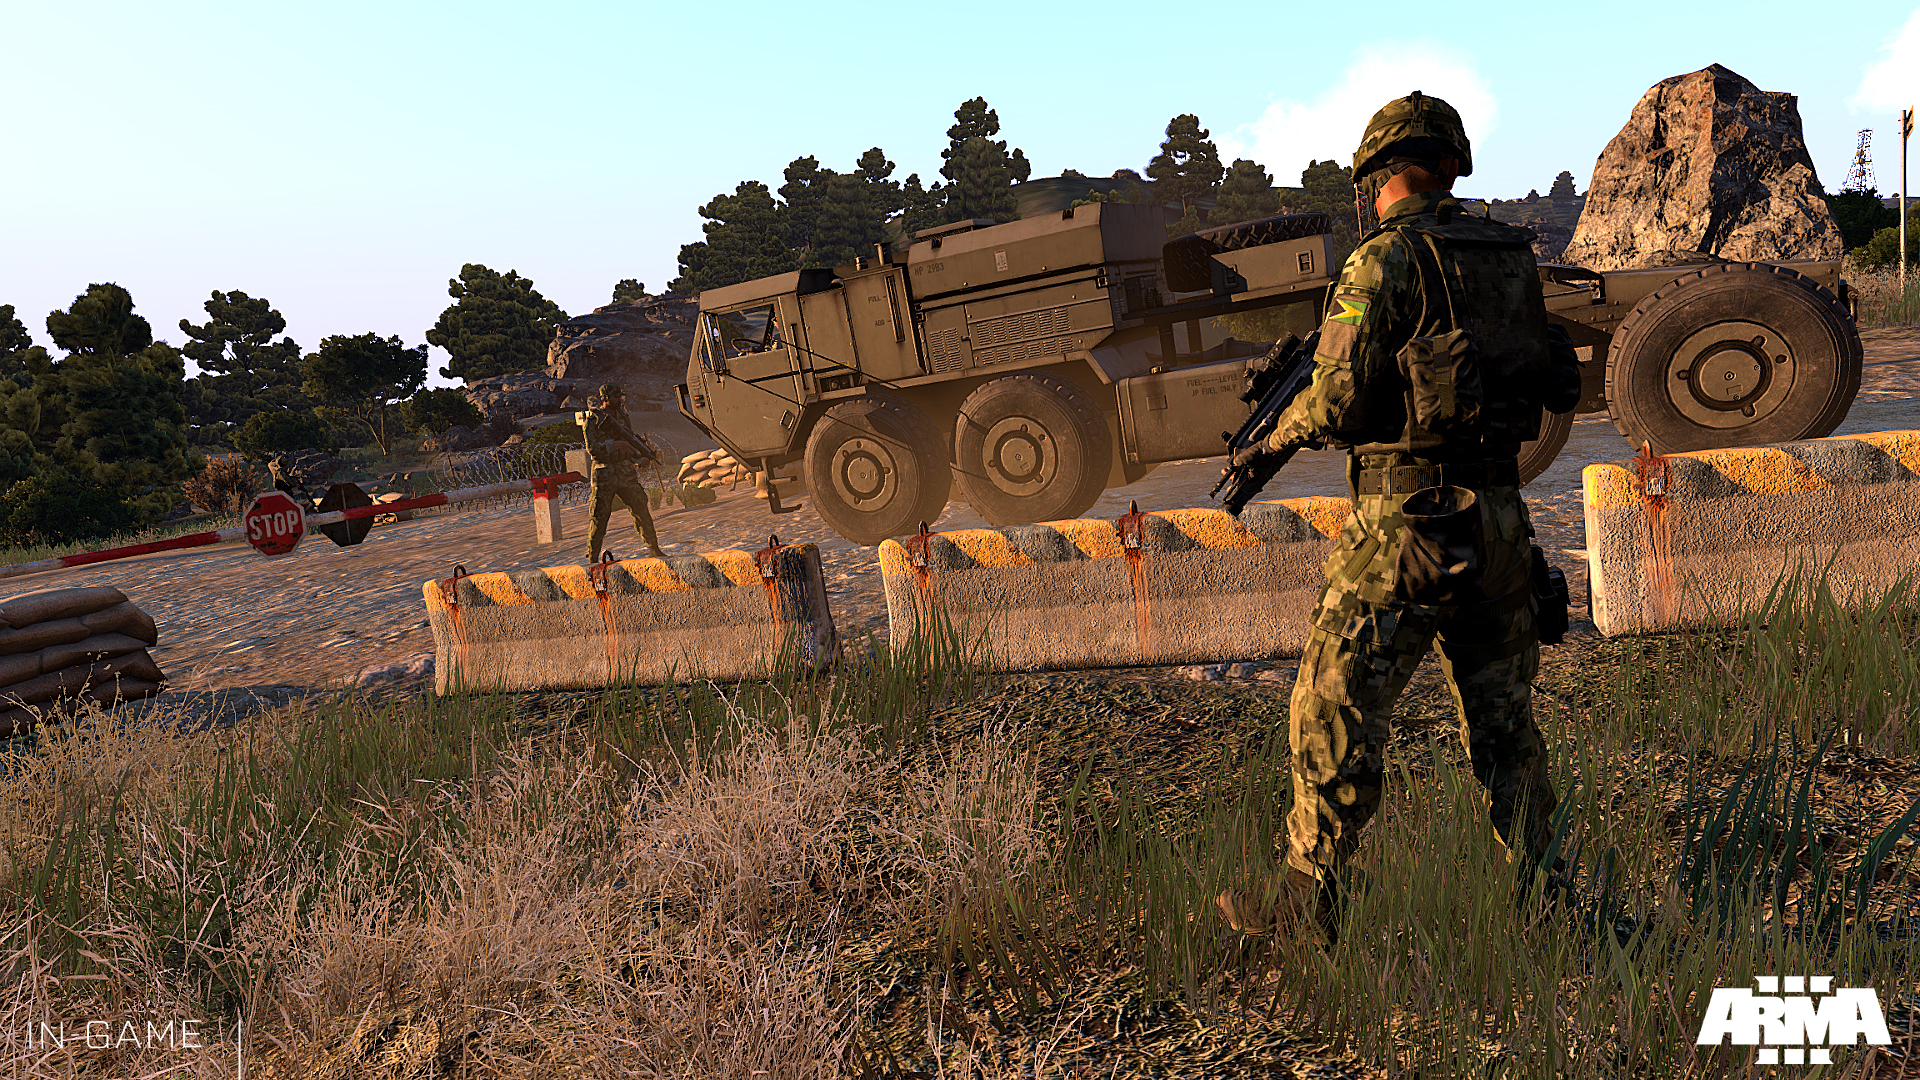 Report in thomas ryan campaign news arma 3 reported on november 11 2013 gumiabroncs Choice Image